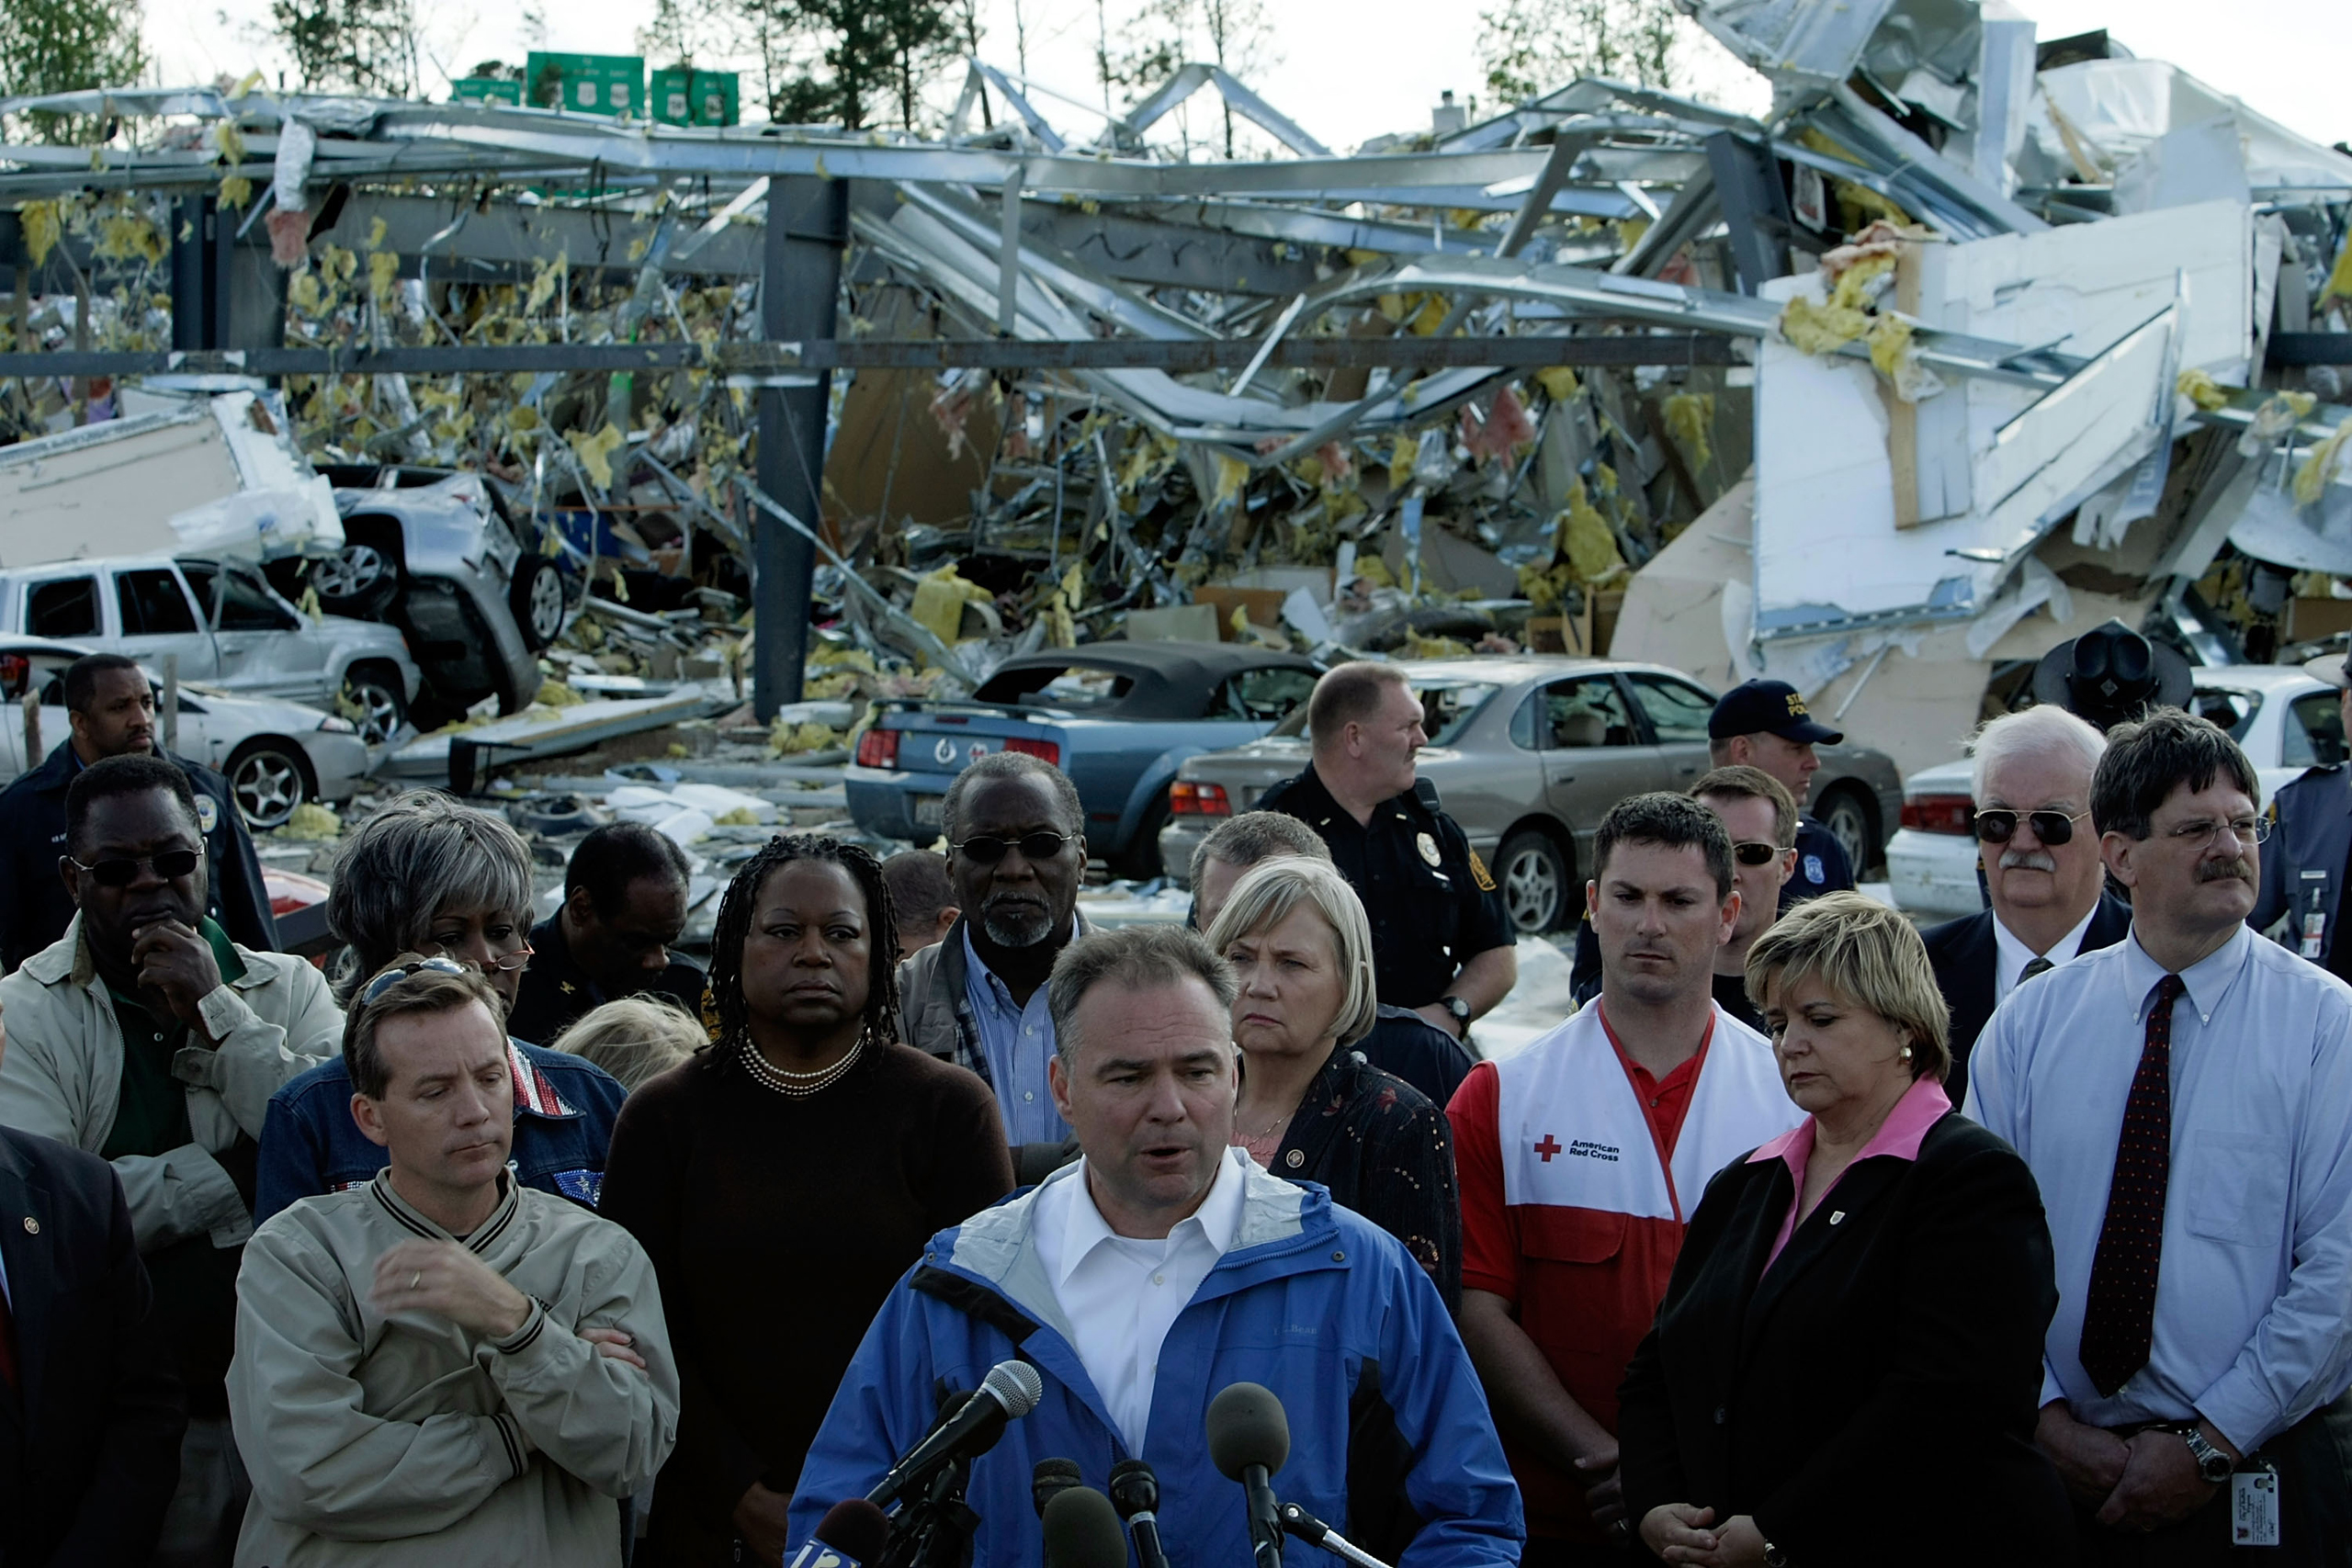 Virginia Gov. Tim Kaine speaks to the media after he toured an area that suffered damaged from one of a spate of tornados to touch down in the Elephant's Fork area of Suffolk, Va. on April 29, 2008.